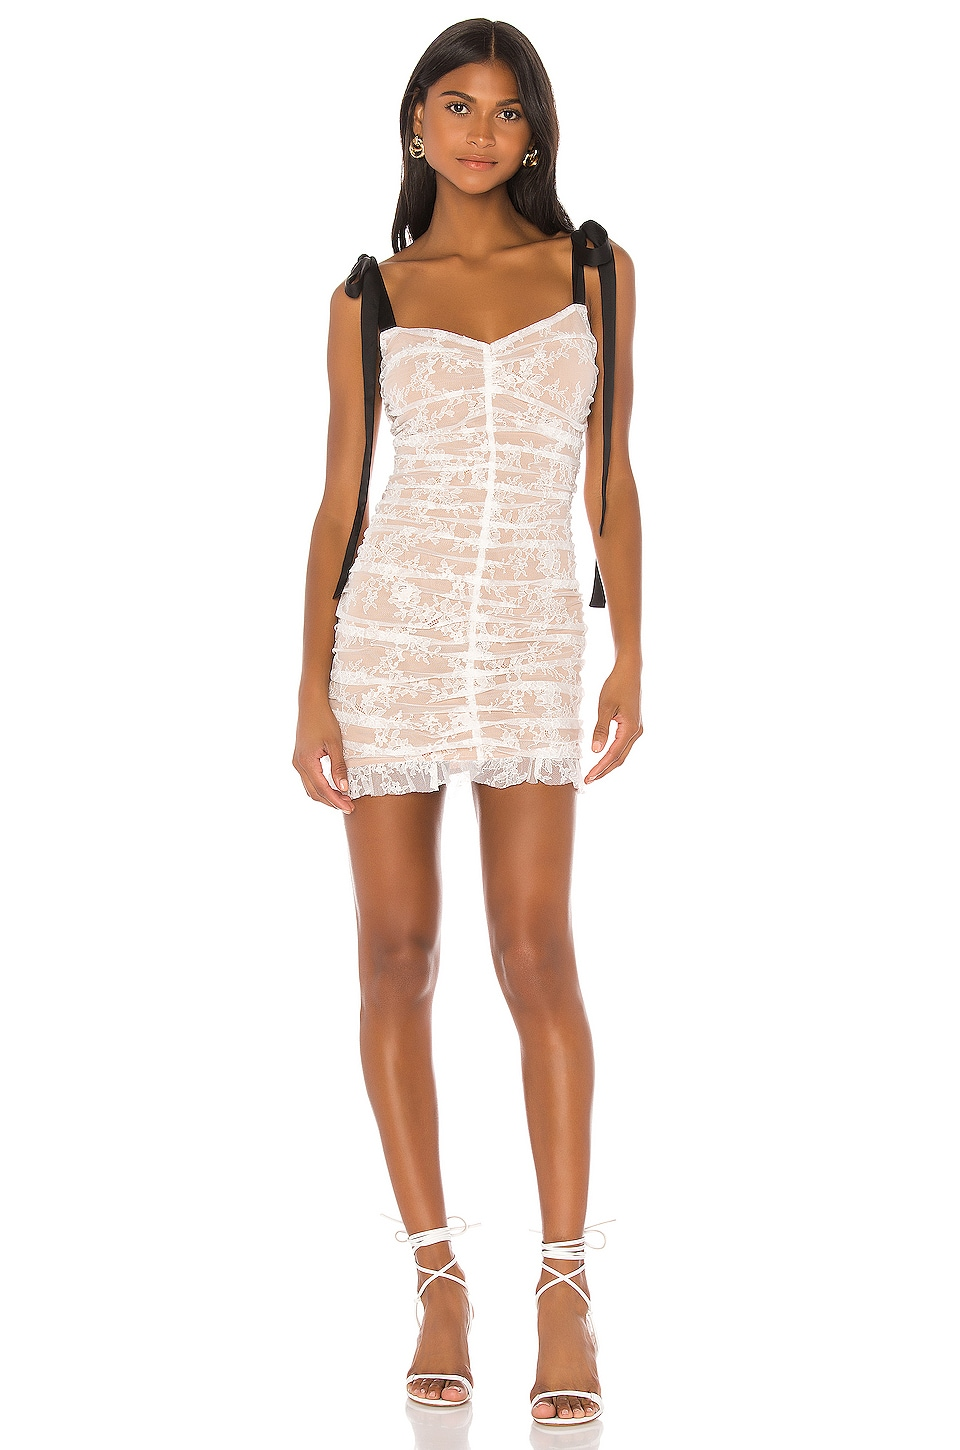 For Love & Lemons Dolly Mini Dress in White Lace